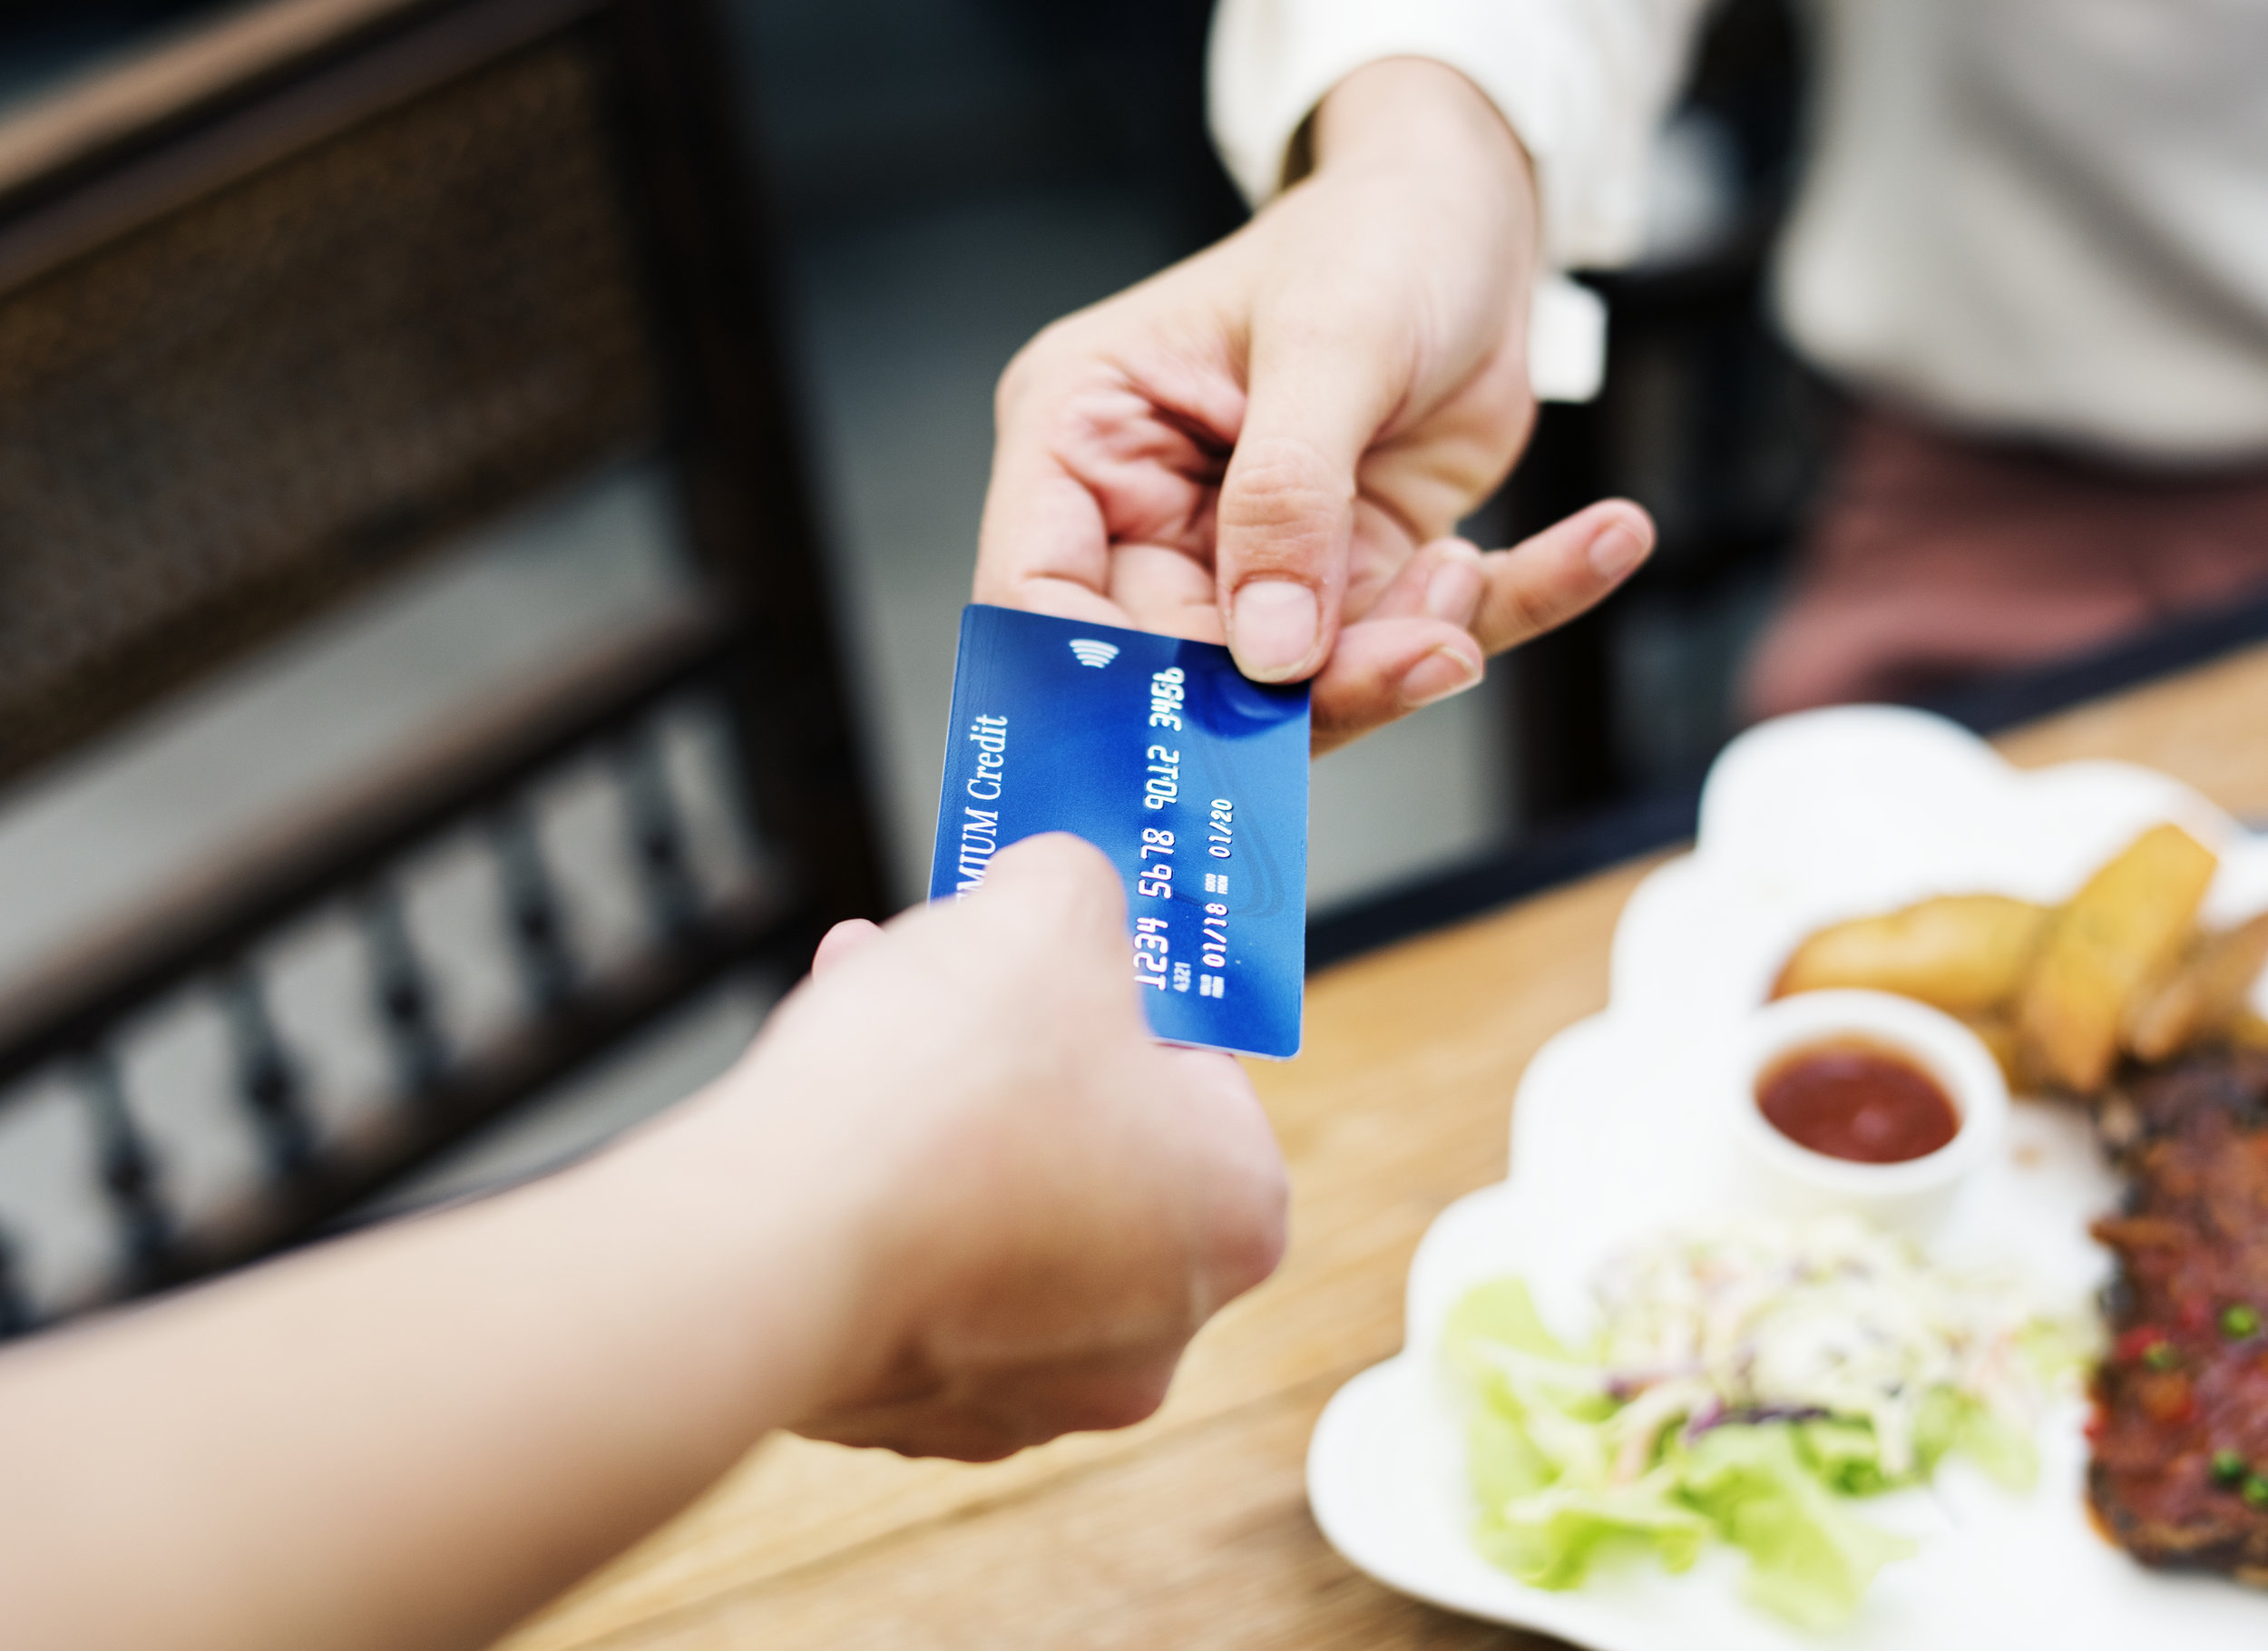 A person paying for a meal with a credit card.